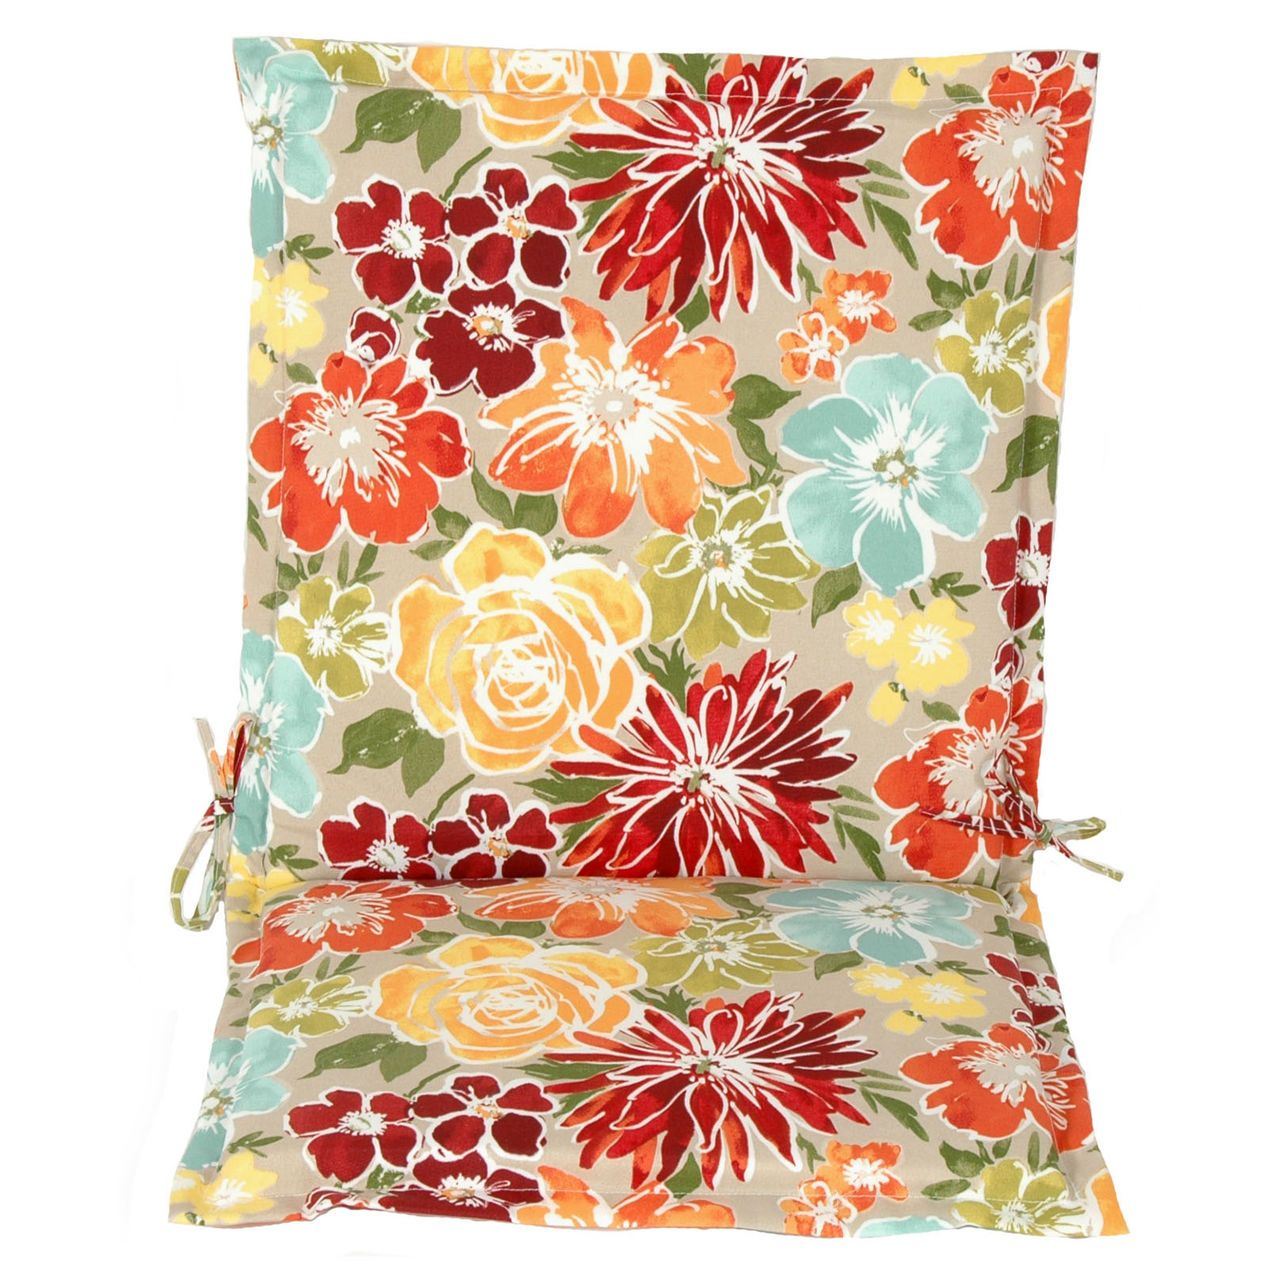 Blossom Sugarplum Flange Hinged Seat Pad Cushion At Home House